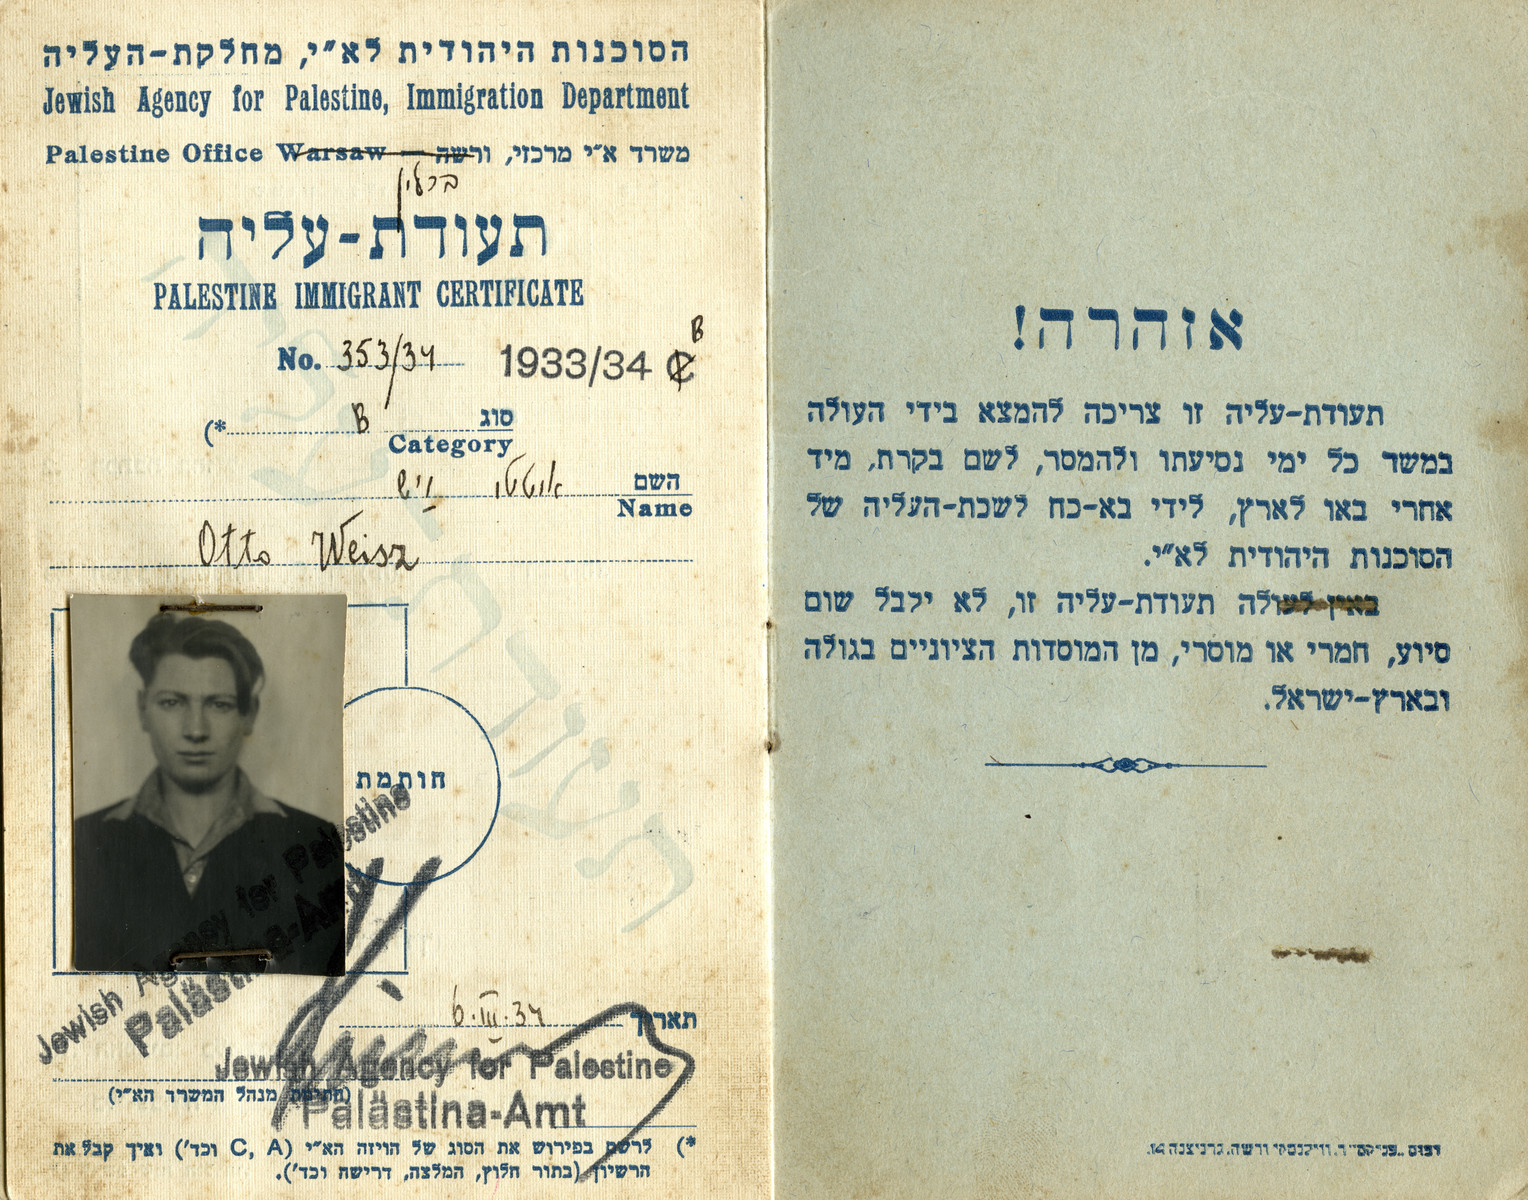 Otto Weiss' Palestine Immigration Certificate.